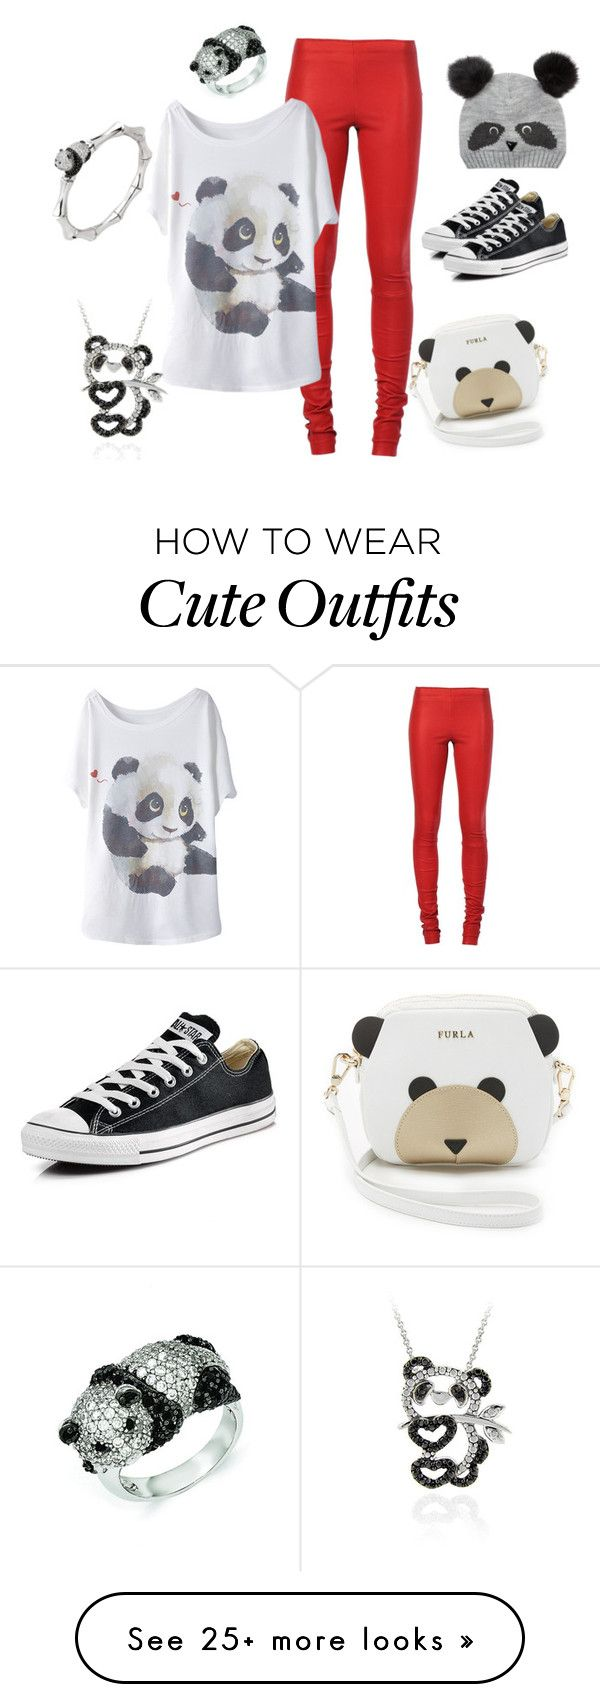 """""""Panda Outfit!"""" by thatperson7 on Polyvore featuring Furla, STOULS, Converse, Accessorize, DB Designs, Kevin Jewelers and Stephanie Deydier"""